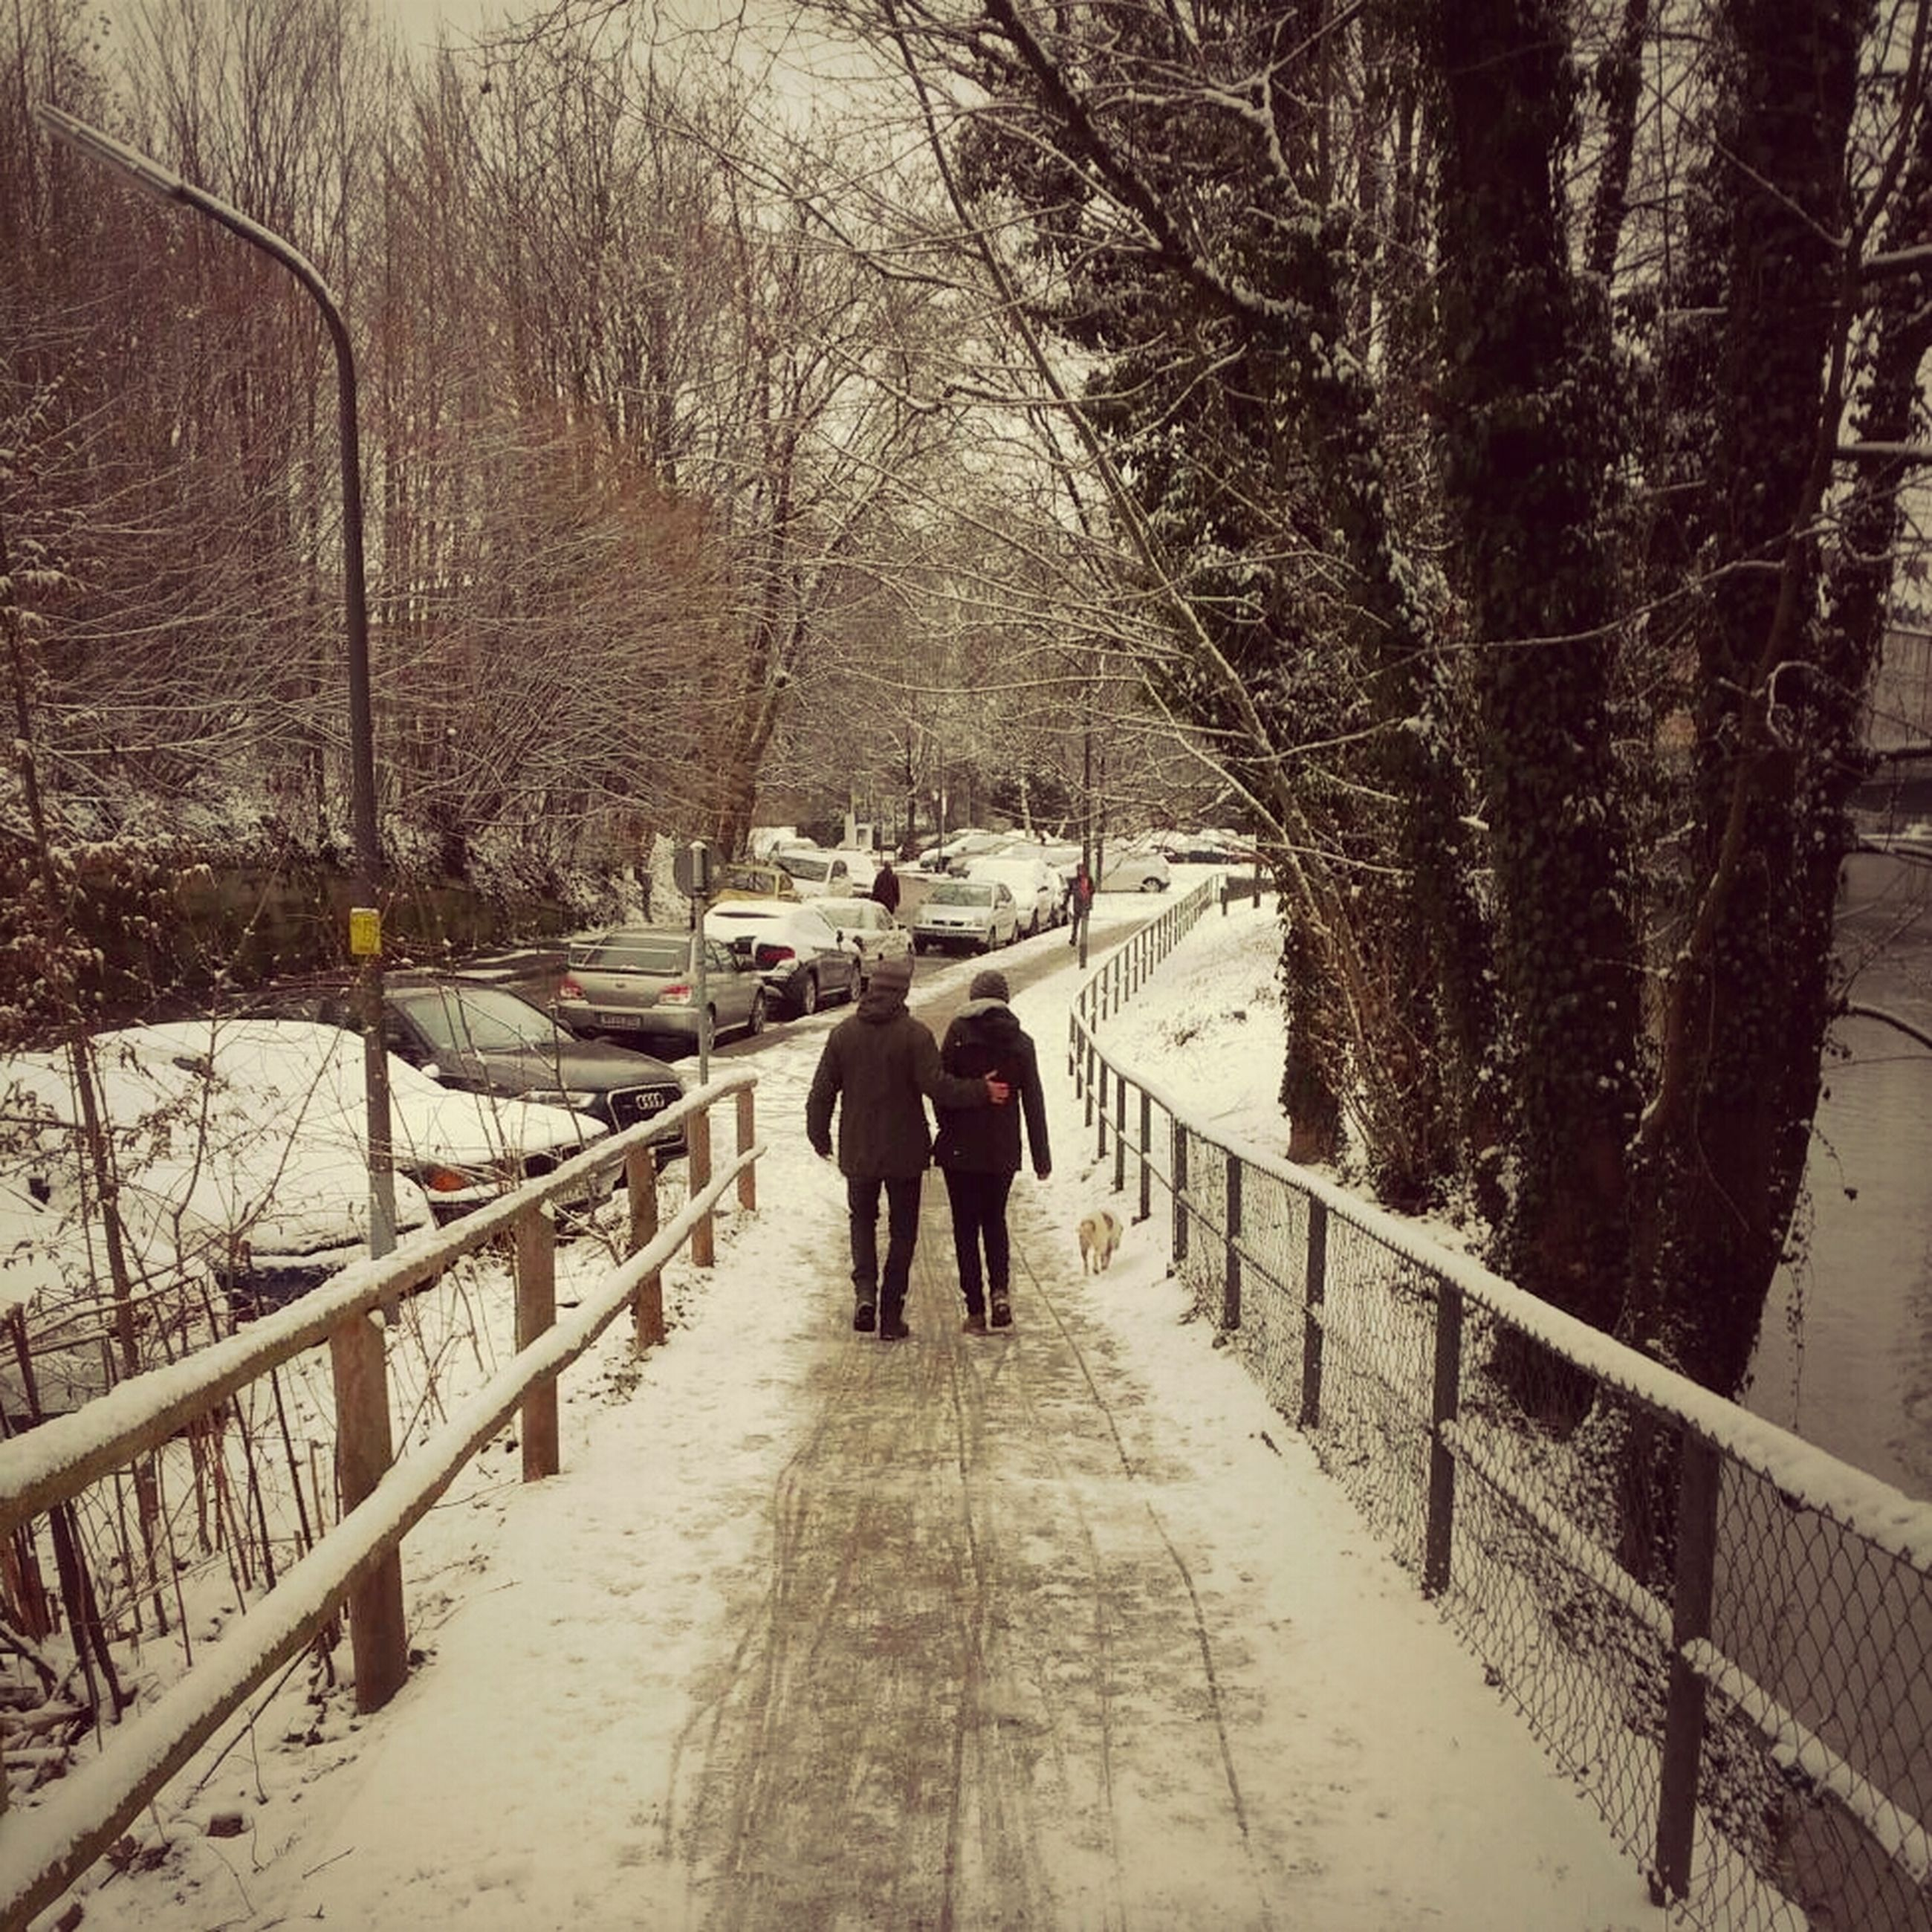 walking, rear view, the way forward, full length, men, tree, transportation, lifestyles, diminishing perspective, leisure activity, person, season, vanishing point, on the move, railing, winter, togetherness, mode of transport